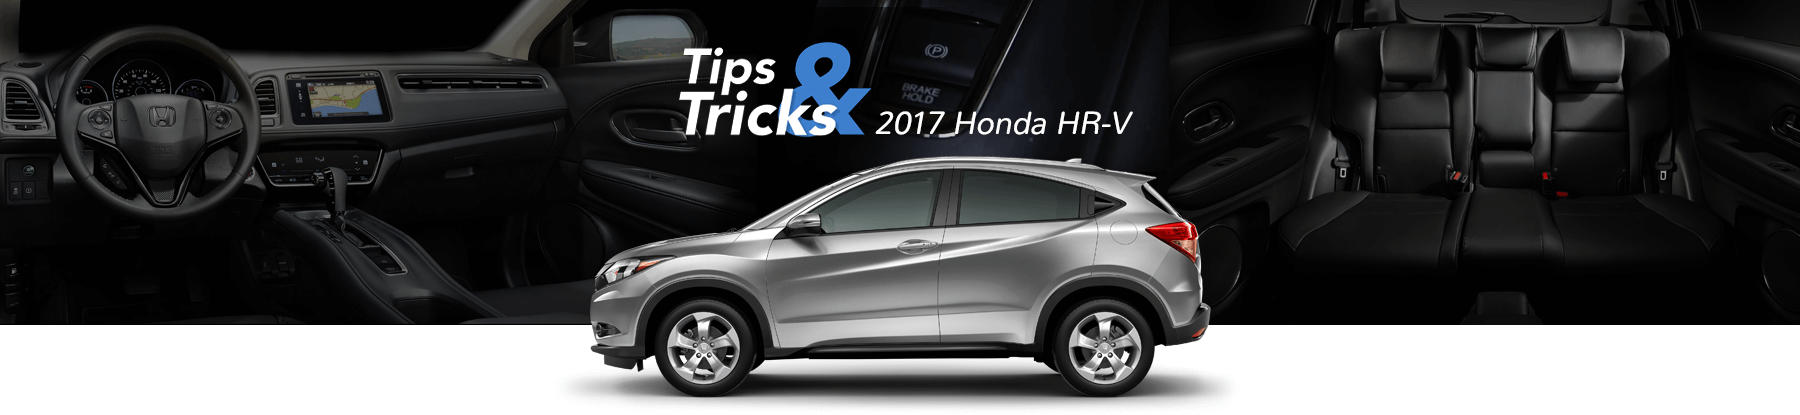 2017 Honda HR-V Tips and Tricks Banner